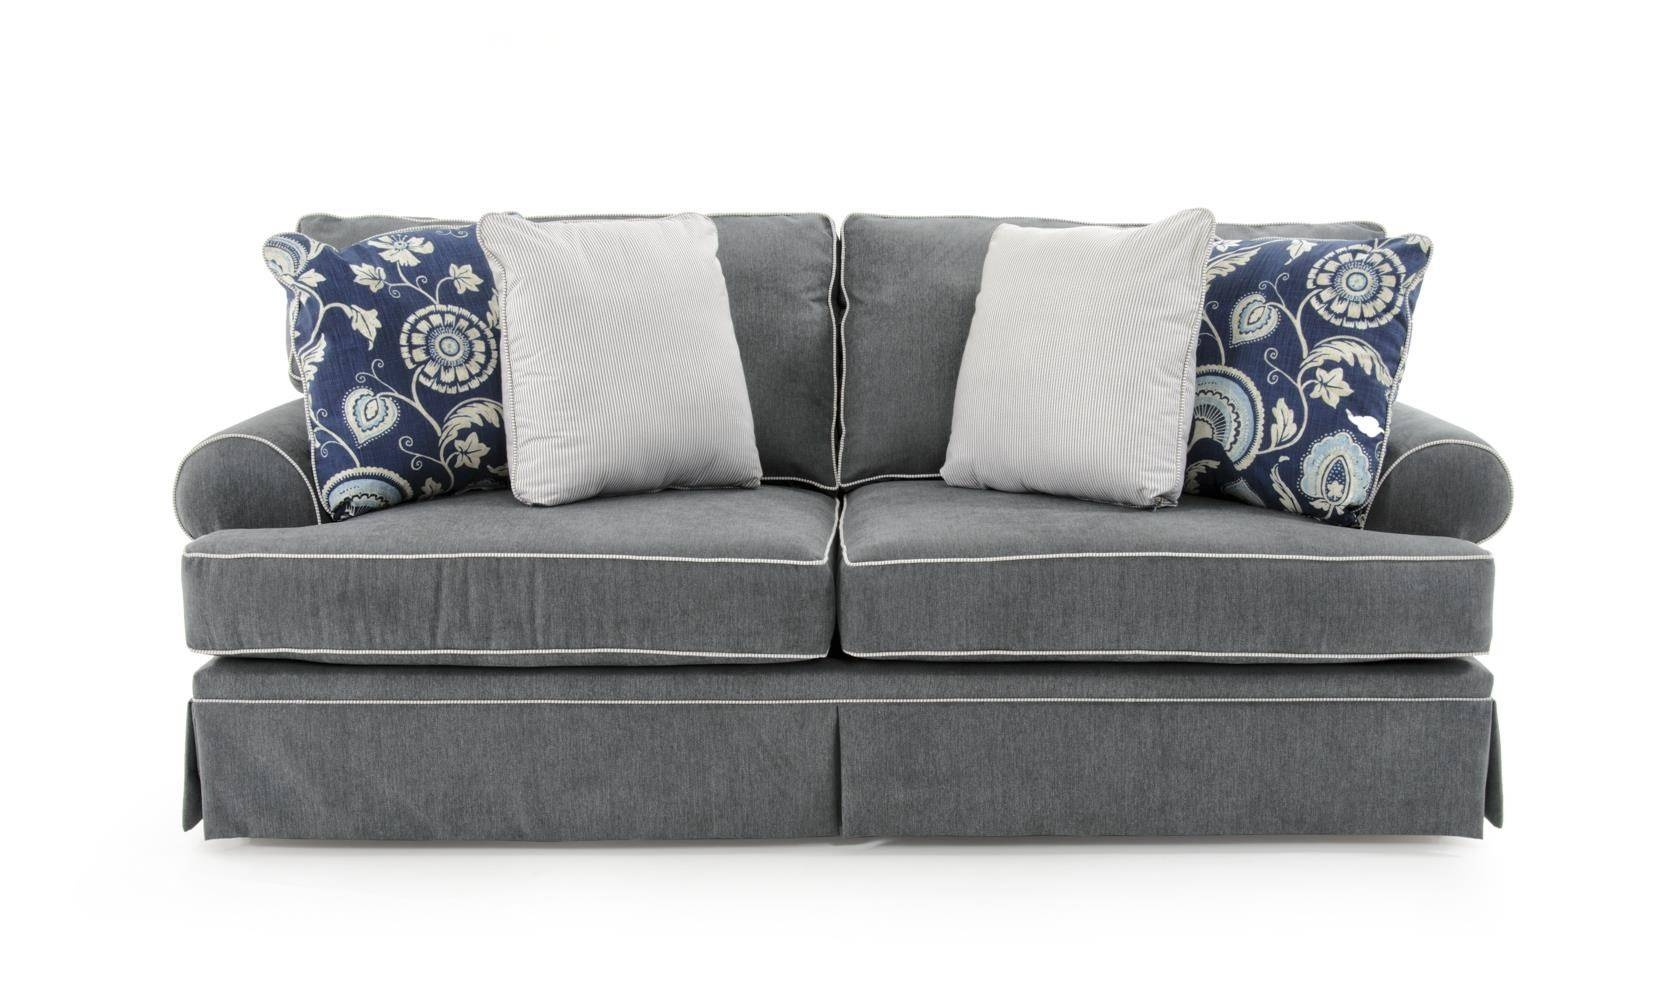 Broyhill Furniture Emily Queen Goodnight Sleeper Sofa – Baer's In Broyhill Emily Sofas (View 4 of 15)